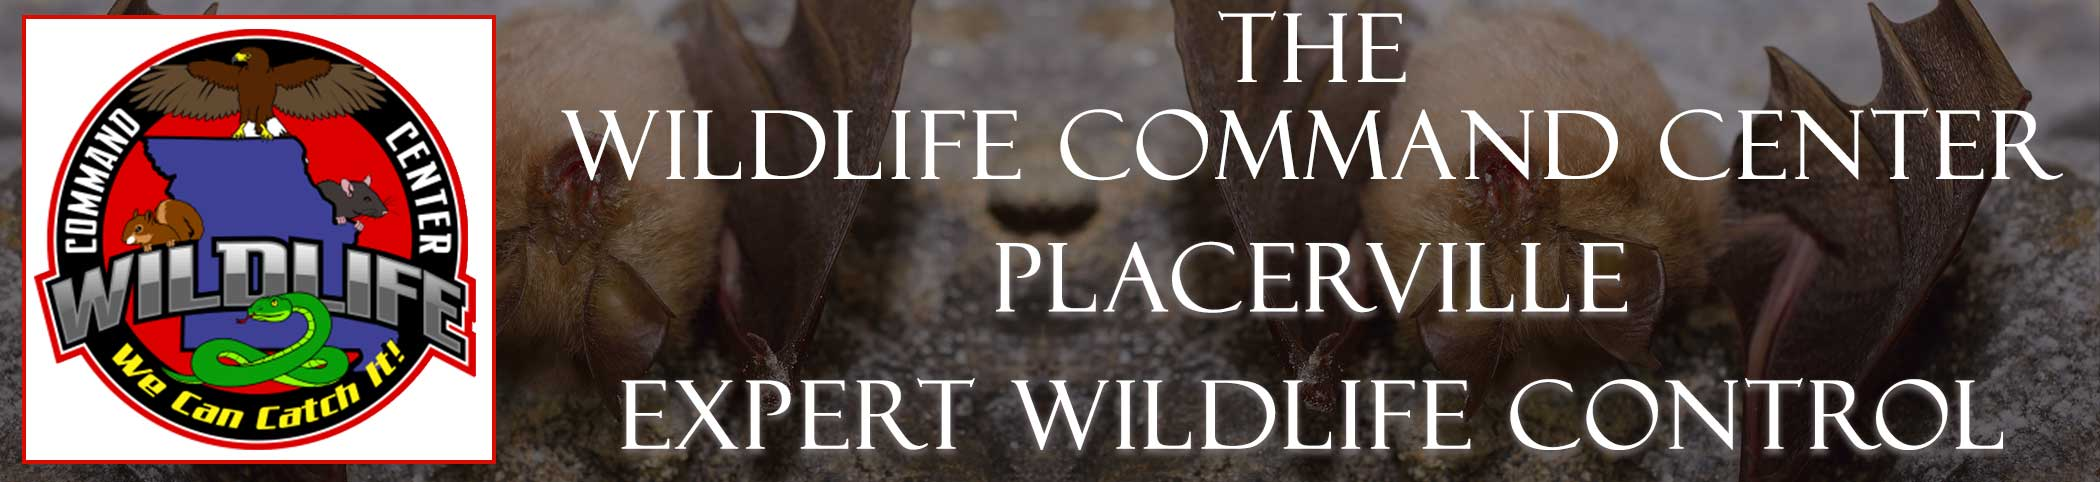 placerville-wildlife-command-center